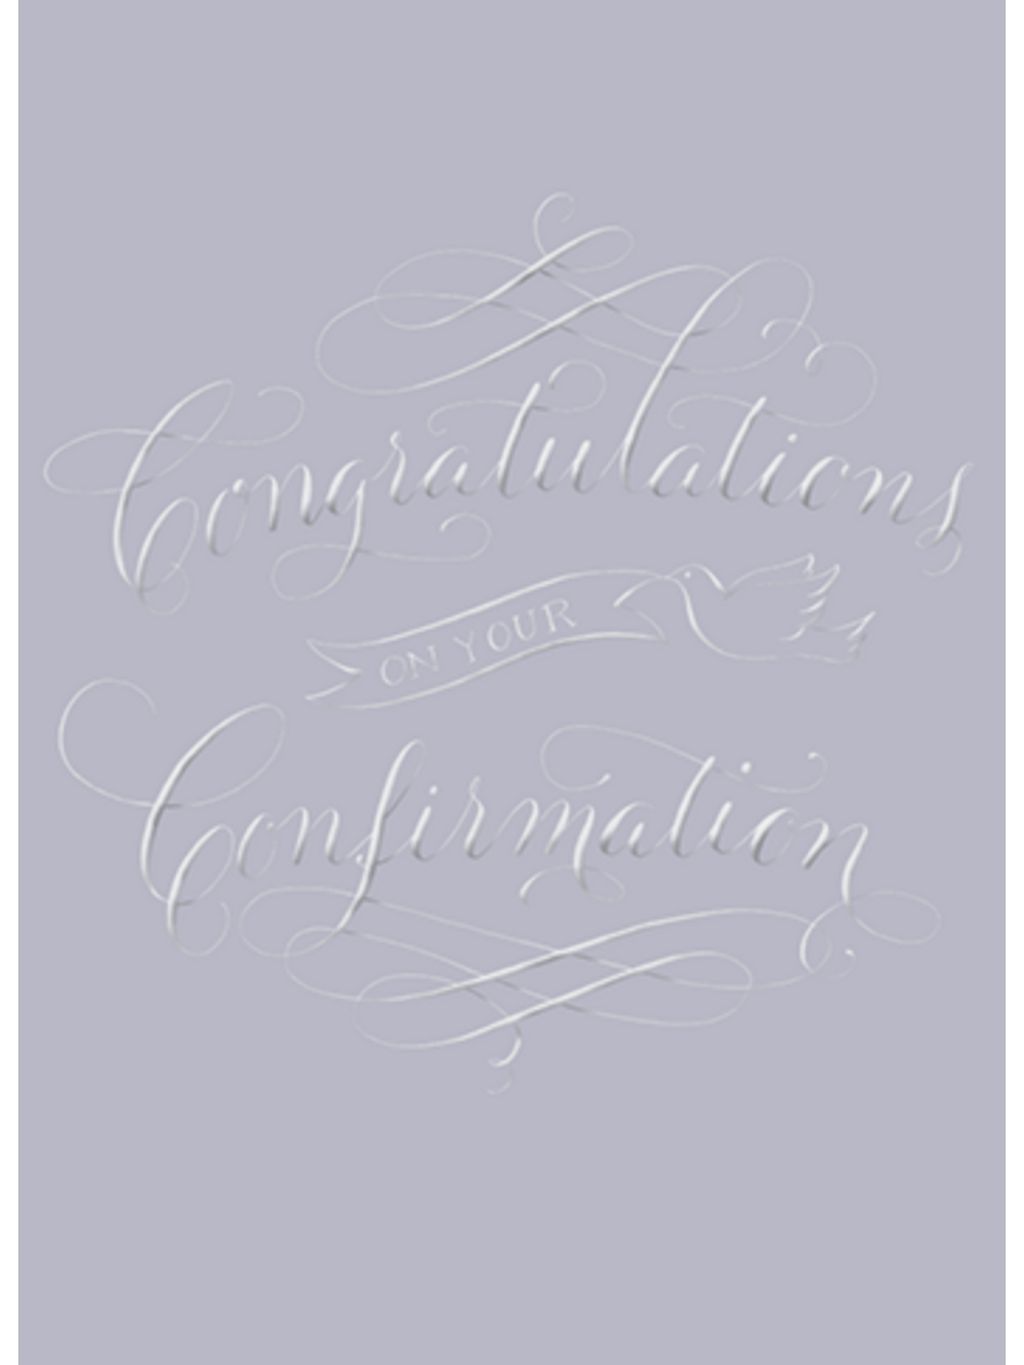 Congratulations On Your Confirmation - Card